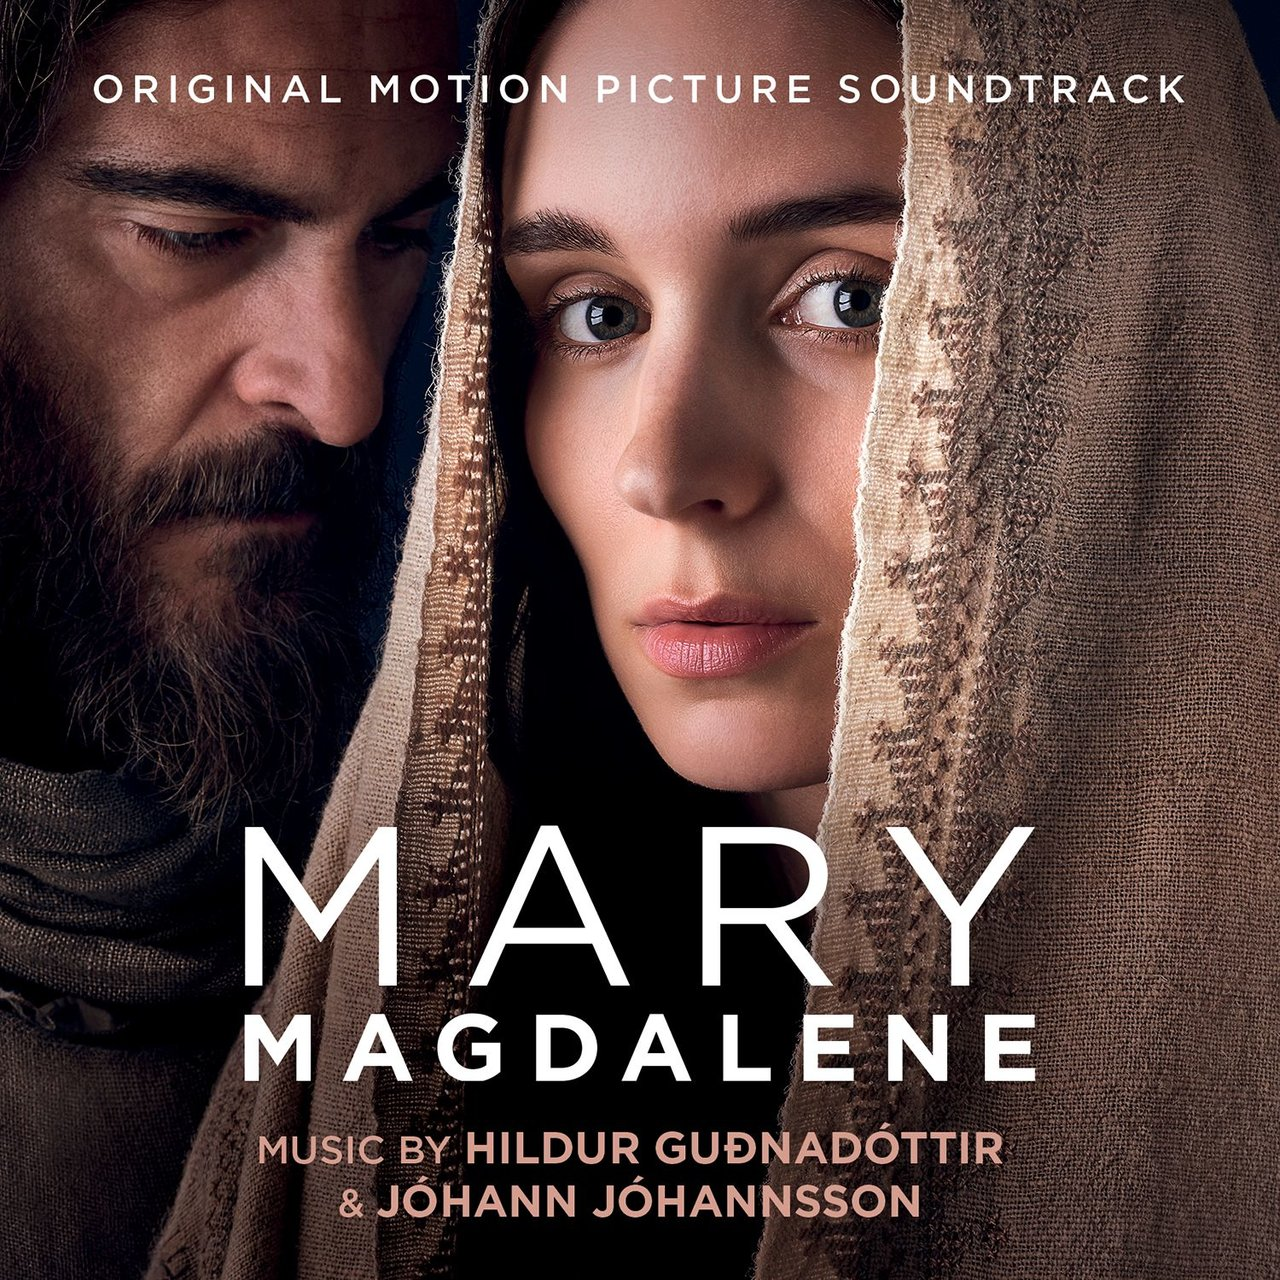 Mary Magdalene (Original Motion Picture Soundtrack)